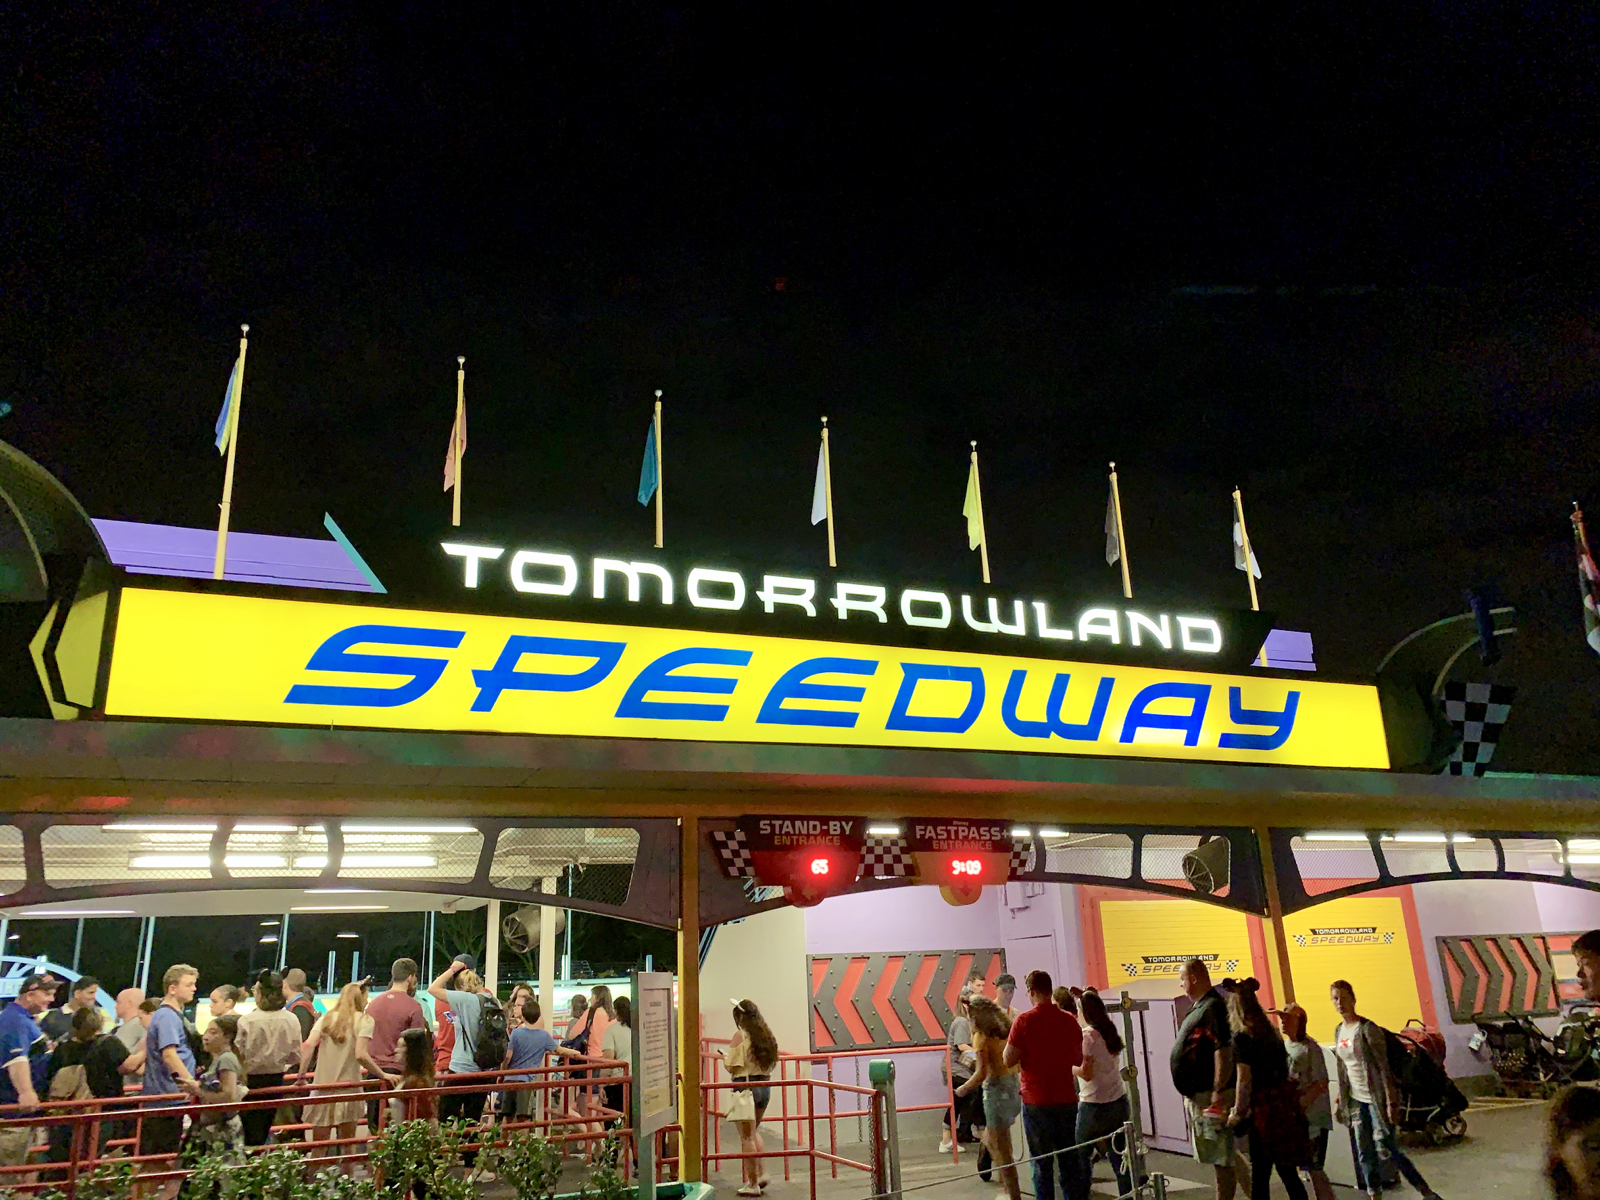 ec756e878d3 ... Day and is now closed to accomodate construction and track  re-configuration for the TRON Lightcycle-themed rollercoaster coming to  Tomorrowland in 2021.